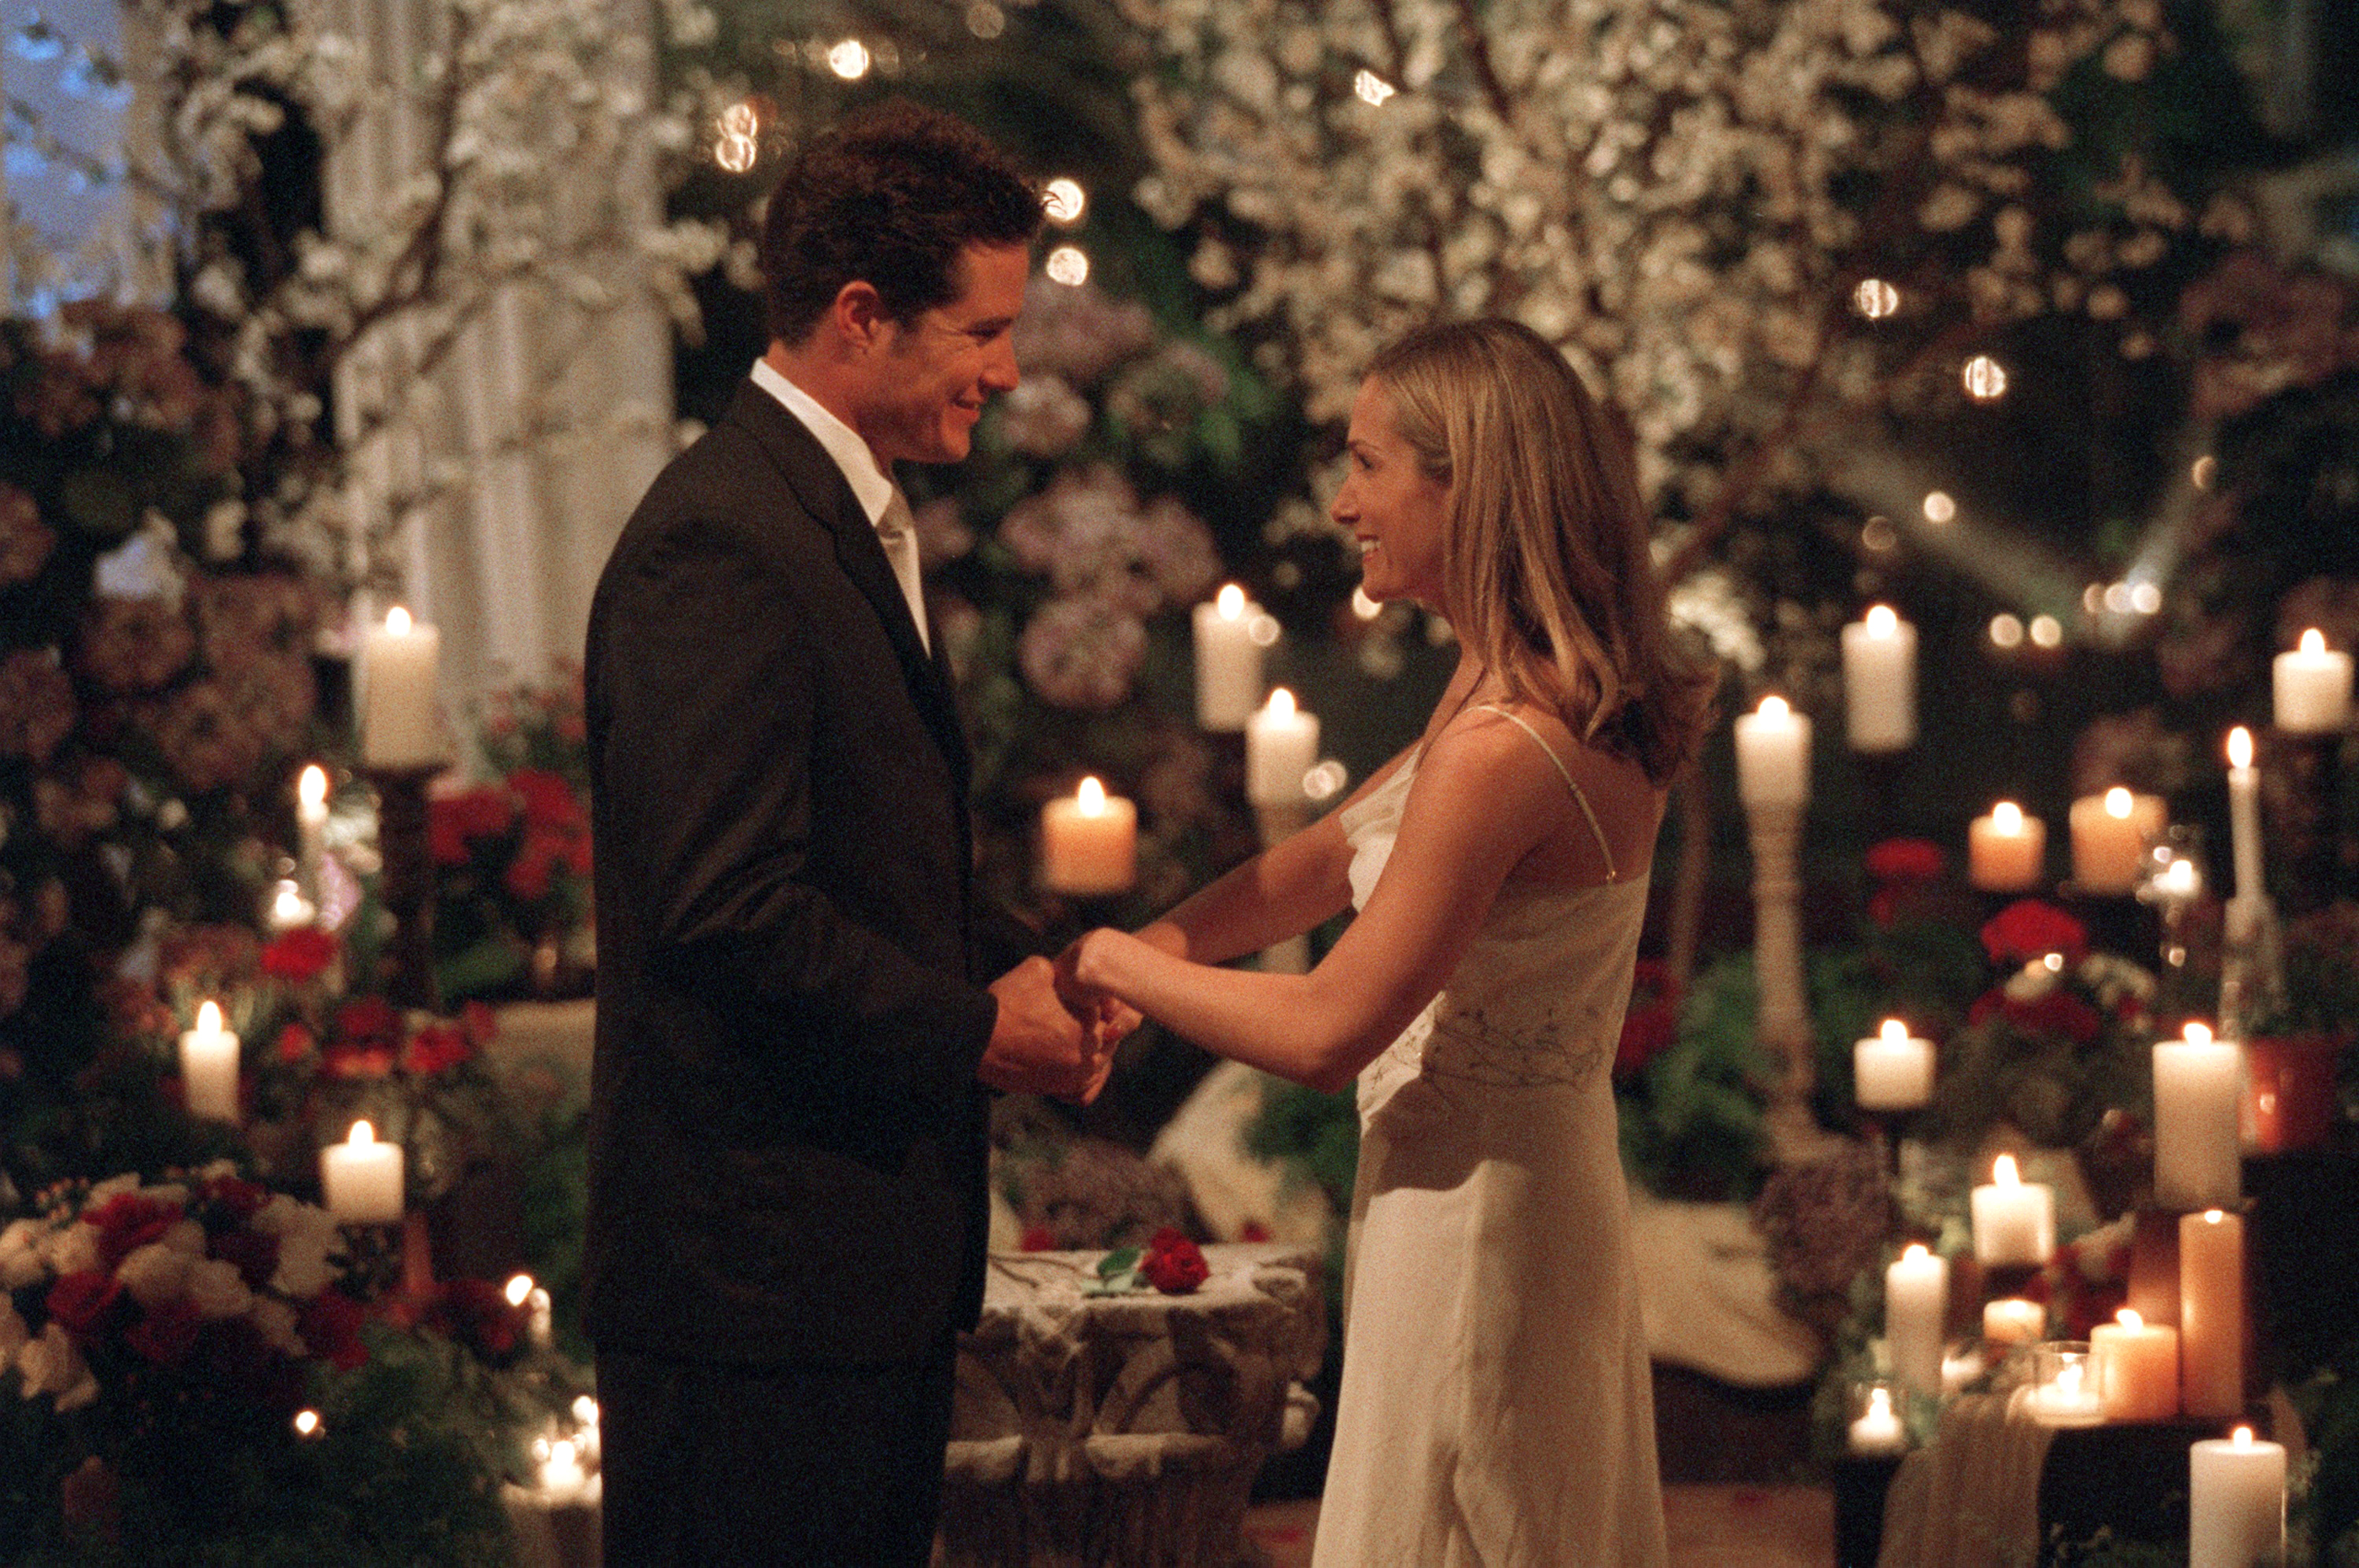 """THE BACHELOR - """"Episode 308"""" - After the two final ladies, Jen and Kirsten, have the chance to meet Andrew's family, and he goes shopping for an expensive piece of jewelry, the time comes for Andrew to make the final difficult decision. Which woman has captured his heart? Will he propose? Will she accept? How will he break the news to the woman he has not chosen? Will she be heartbroken? All will be revealed during the gripping two-hour conclusion of """"The Bachelor,"""" SUNDAY, MAY 18 (9:00-11:00 p.m., ET), on the ABC Television Network."""